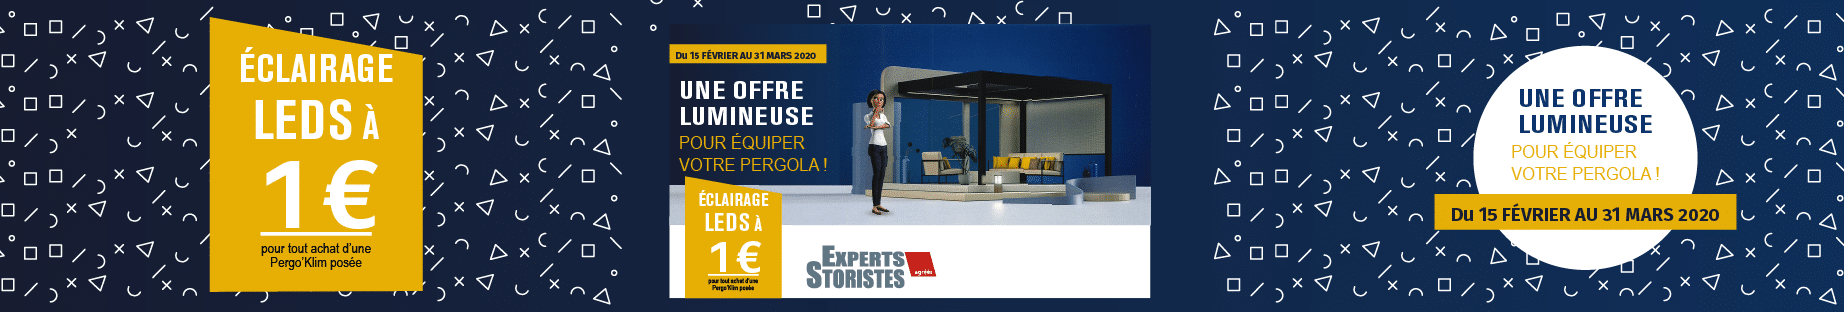 offre lumineuse-site